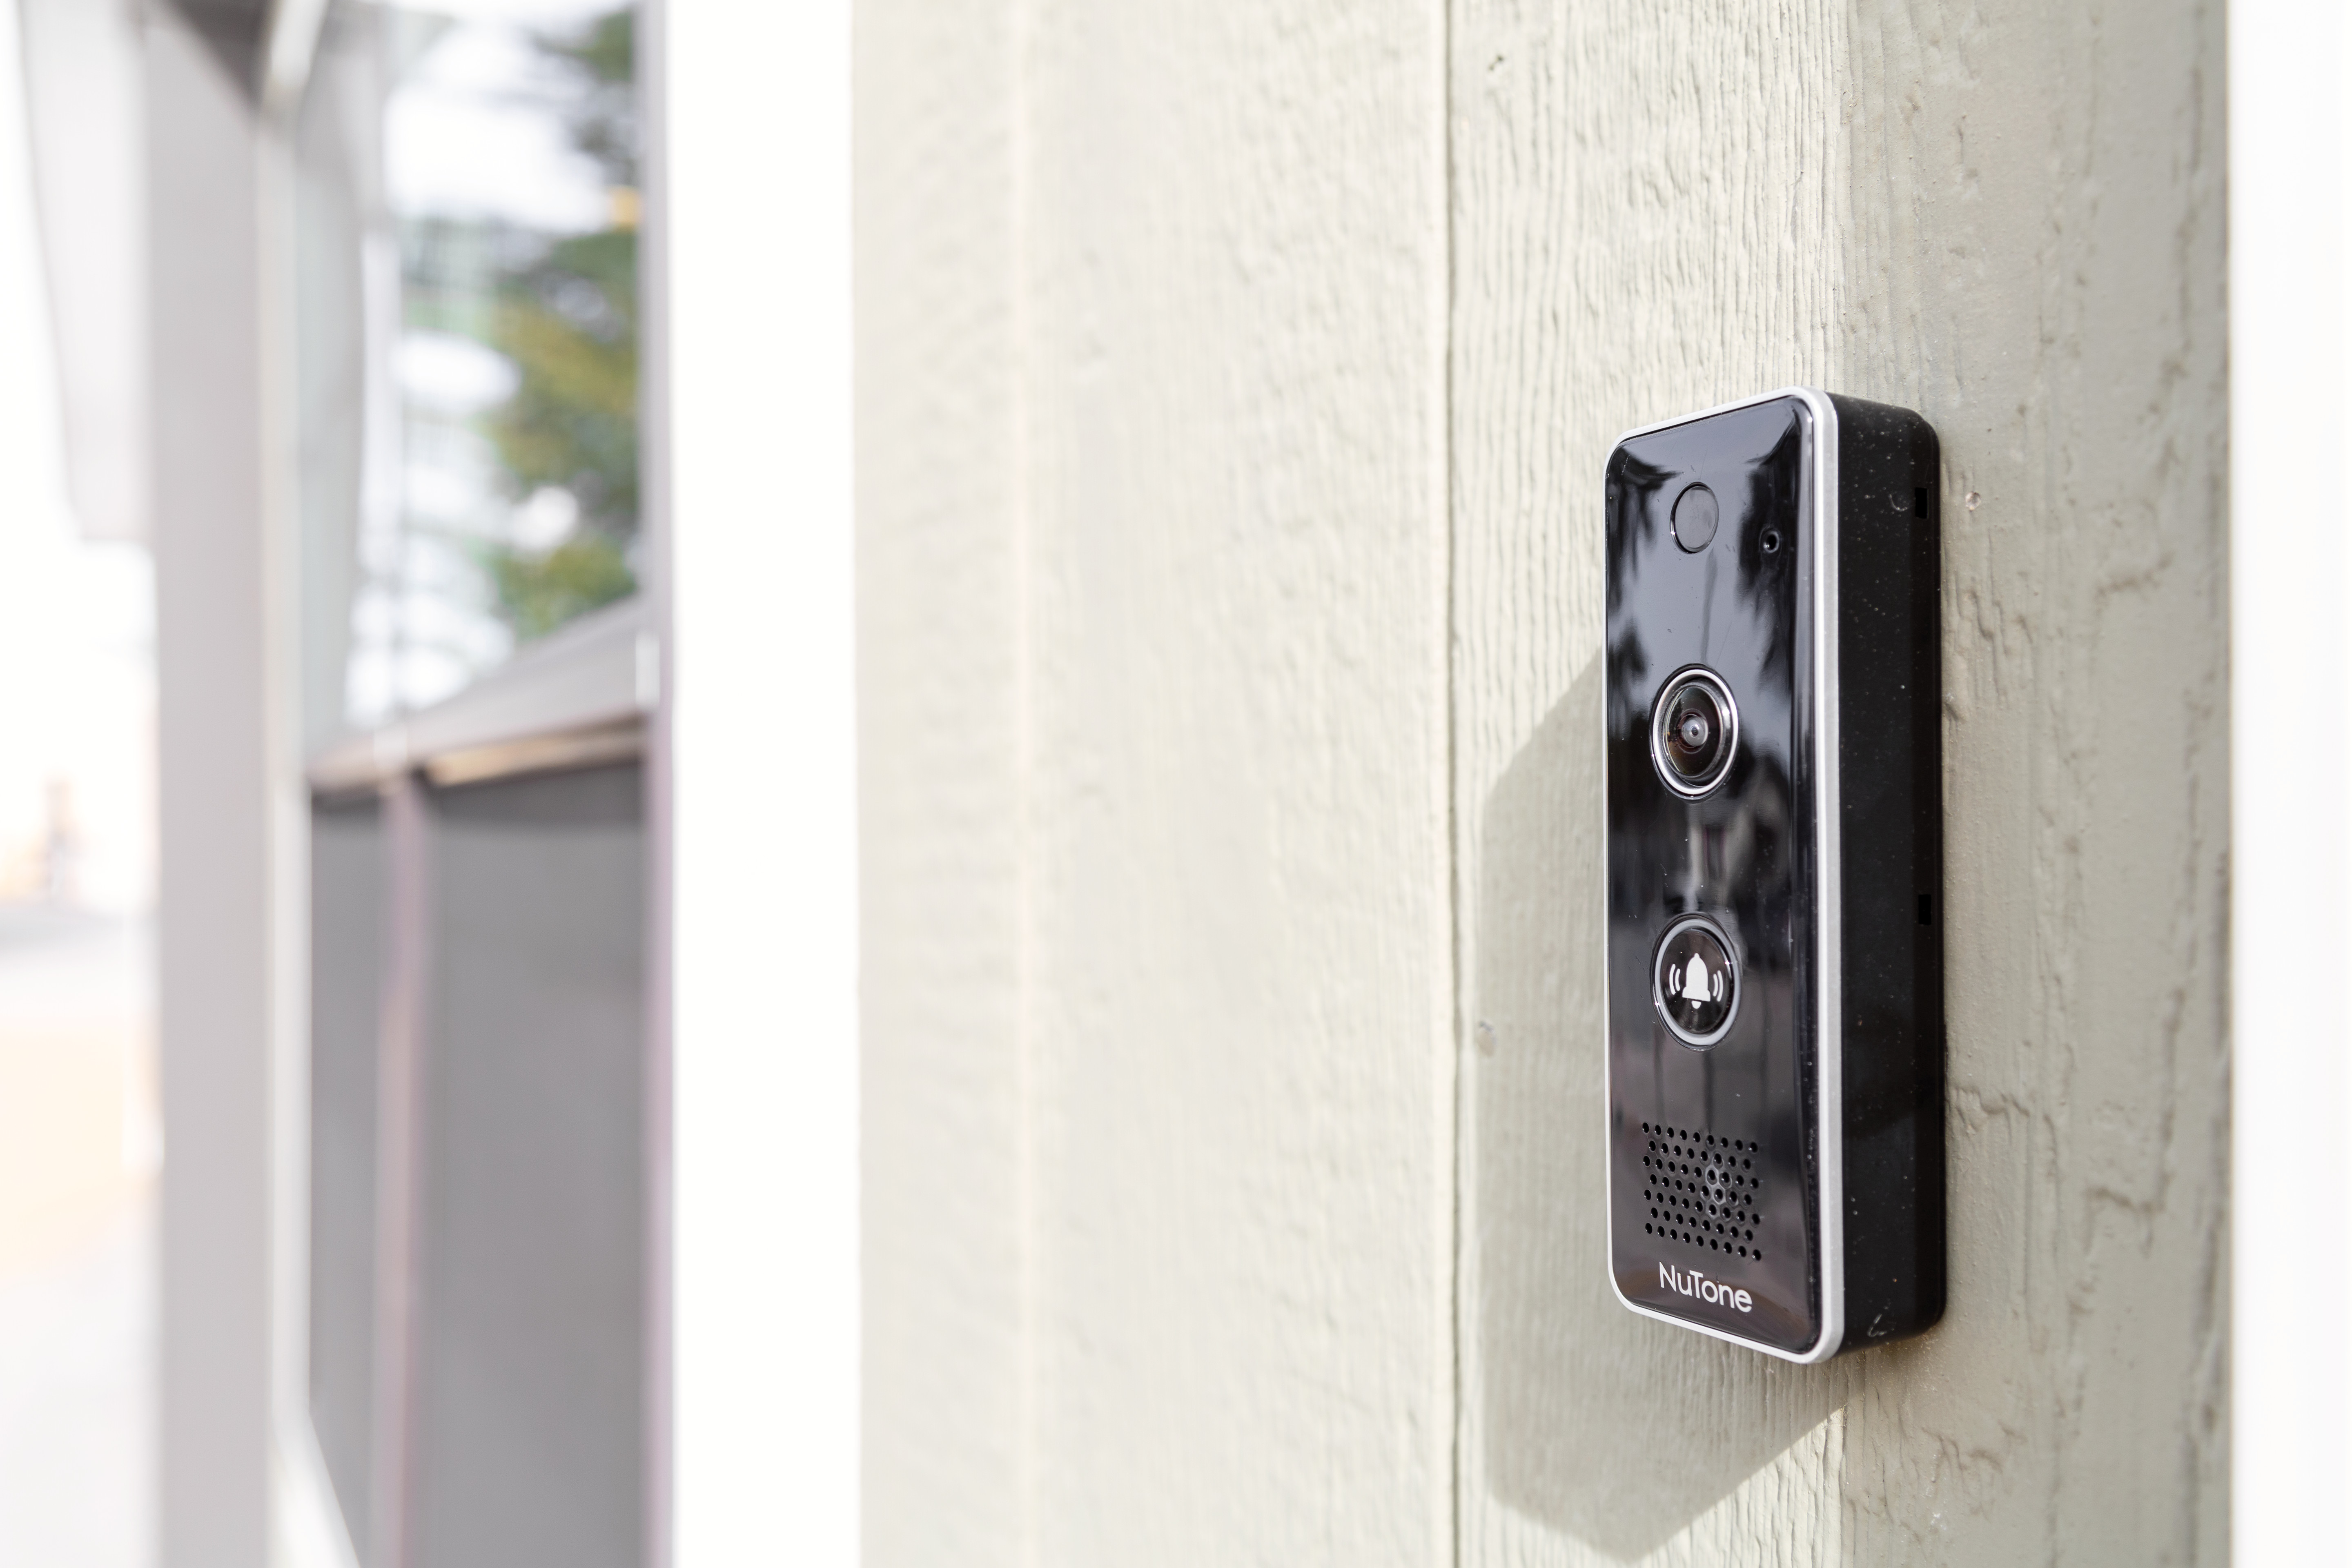 Smart video doorbell with a sleek black look on the side of a manufactured home.